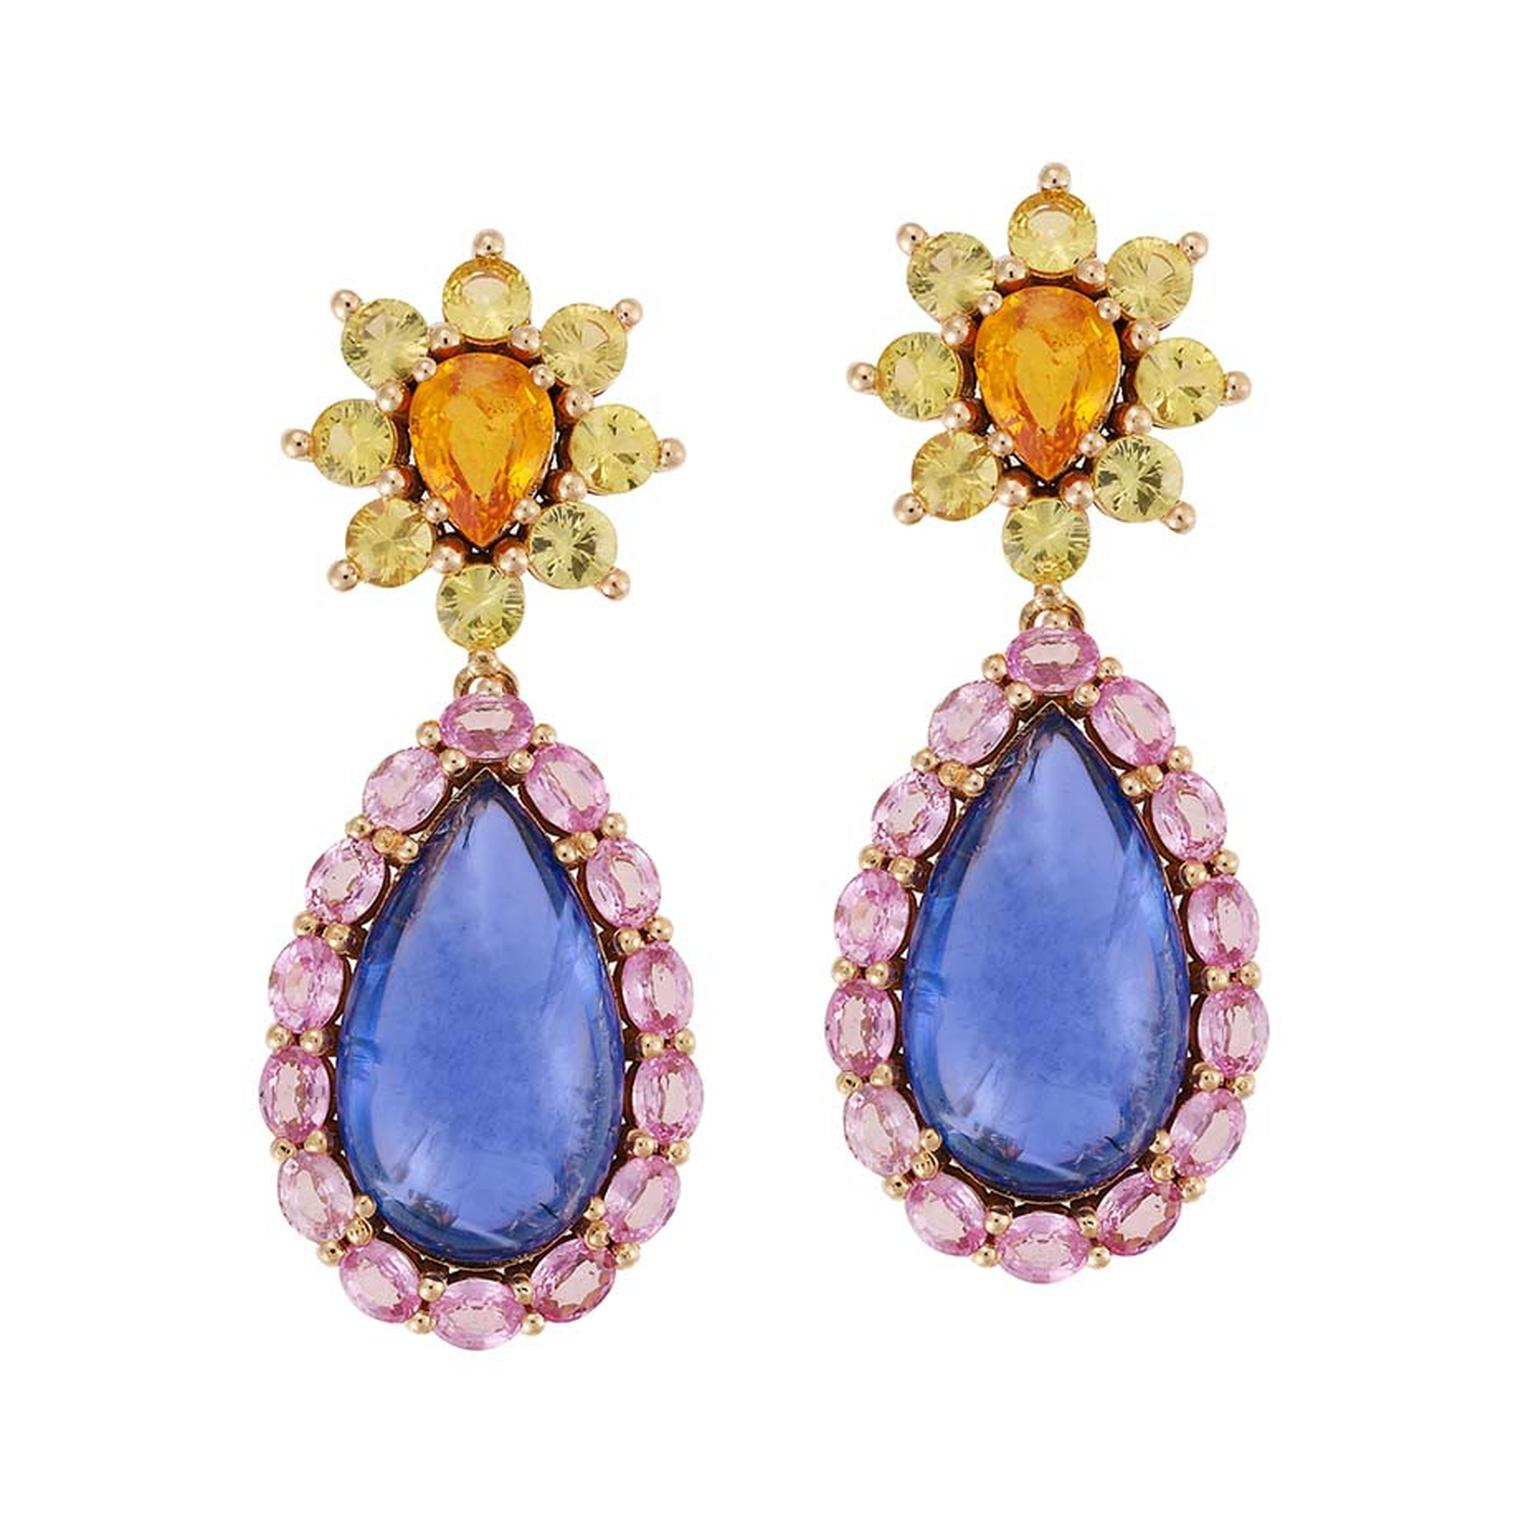 Beautiful bespoke Art Deco earrings with tanzanite and pink sapphires by Greek designer Ileana Makri.